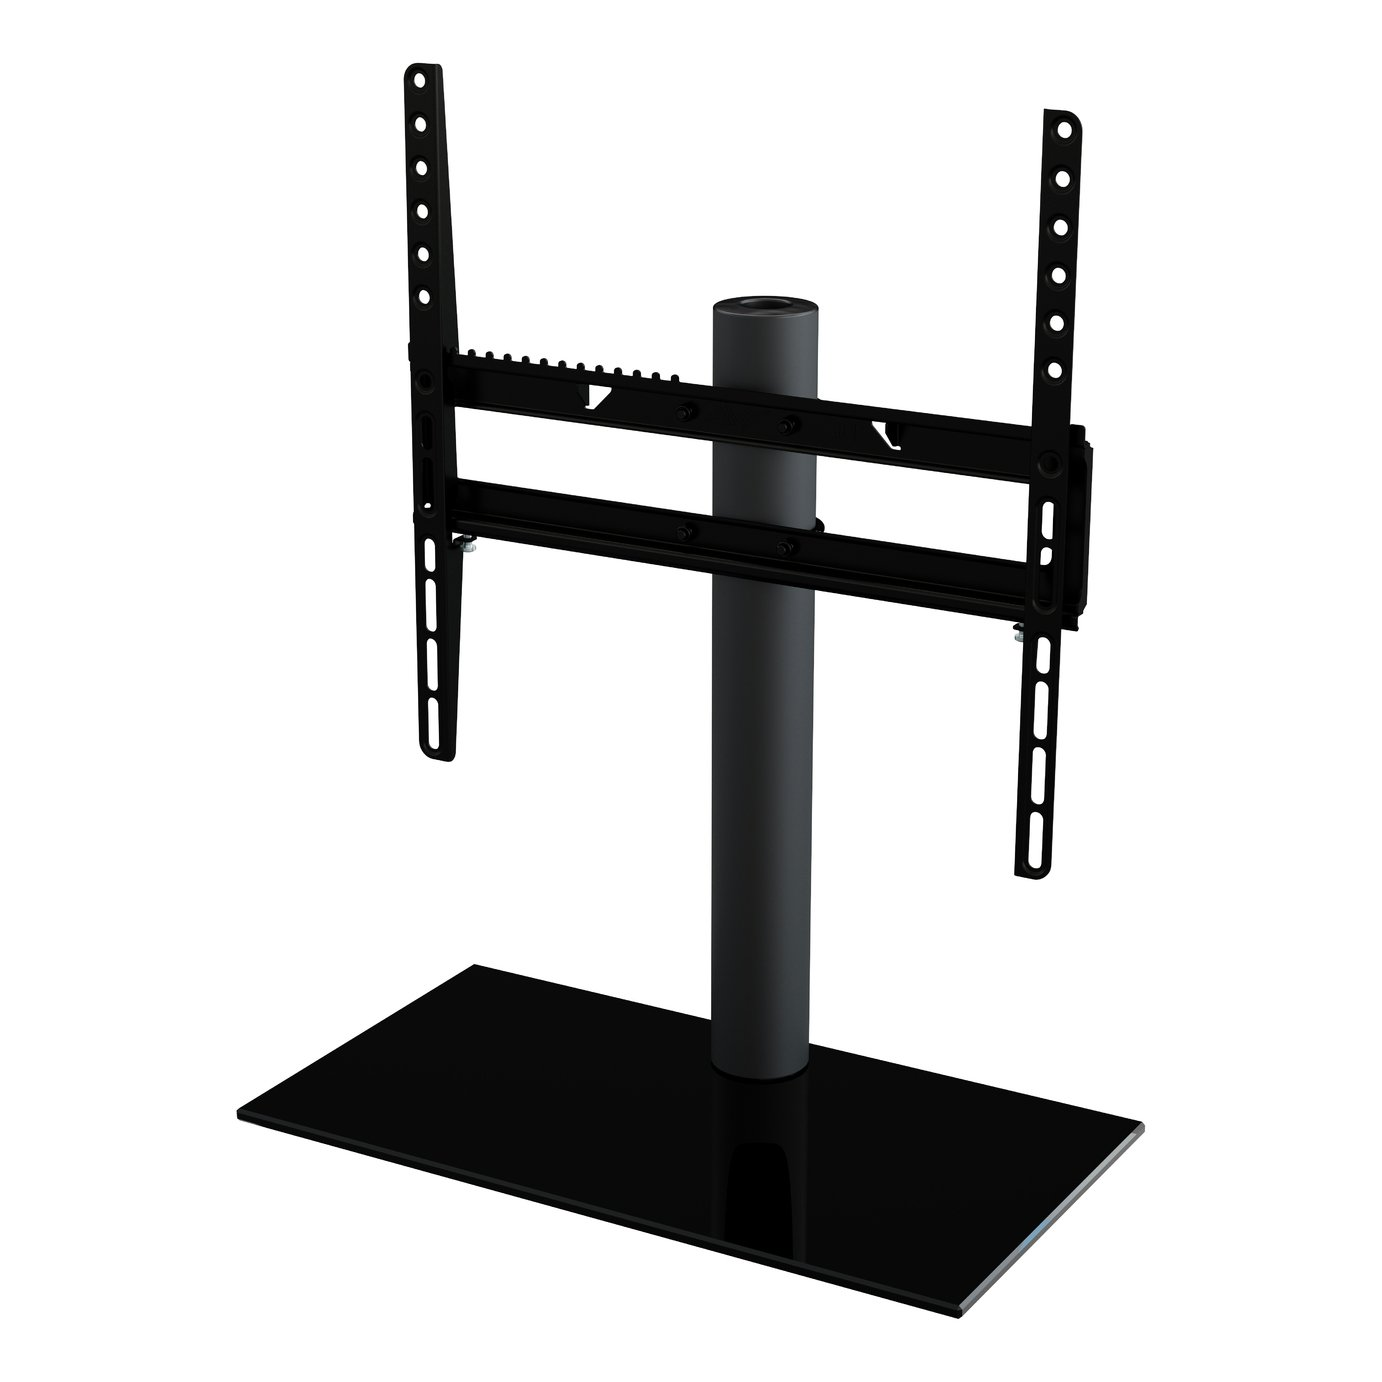 AVF Up To 55 Inch Tabletop TV Stand - Black